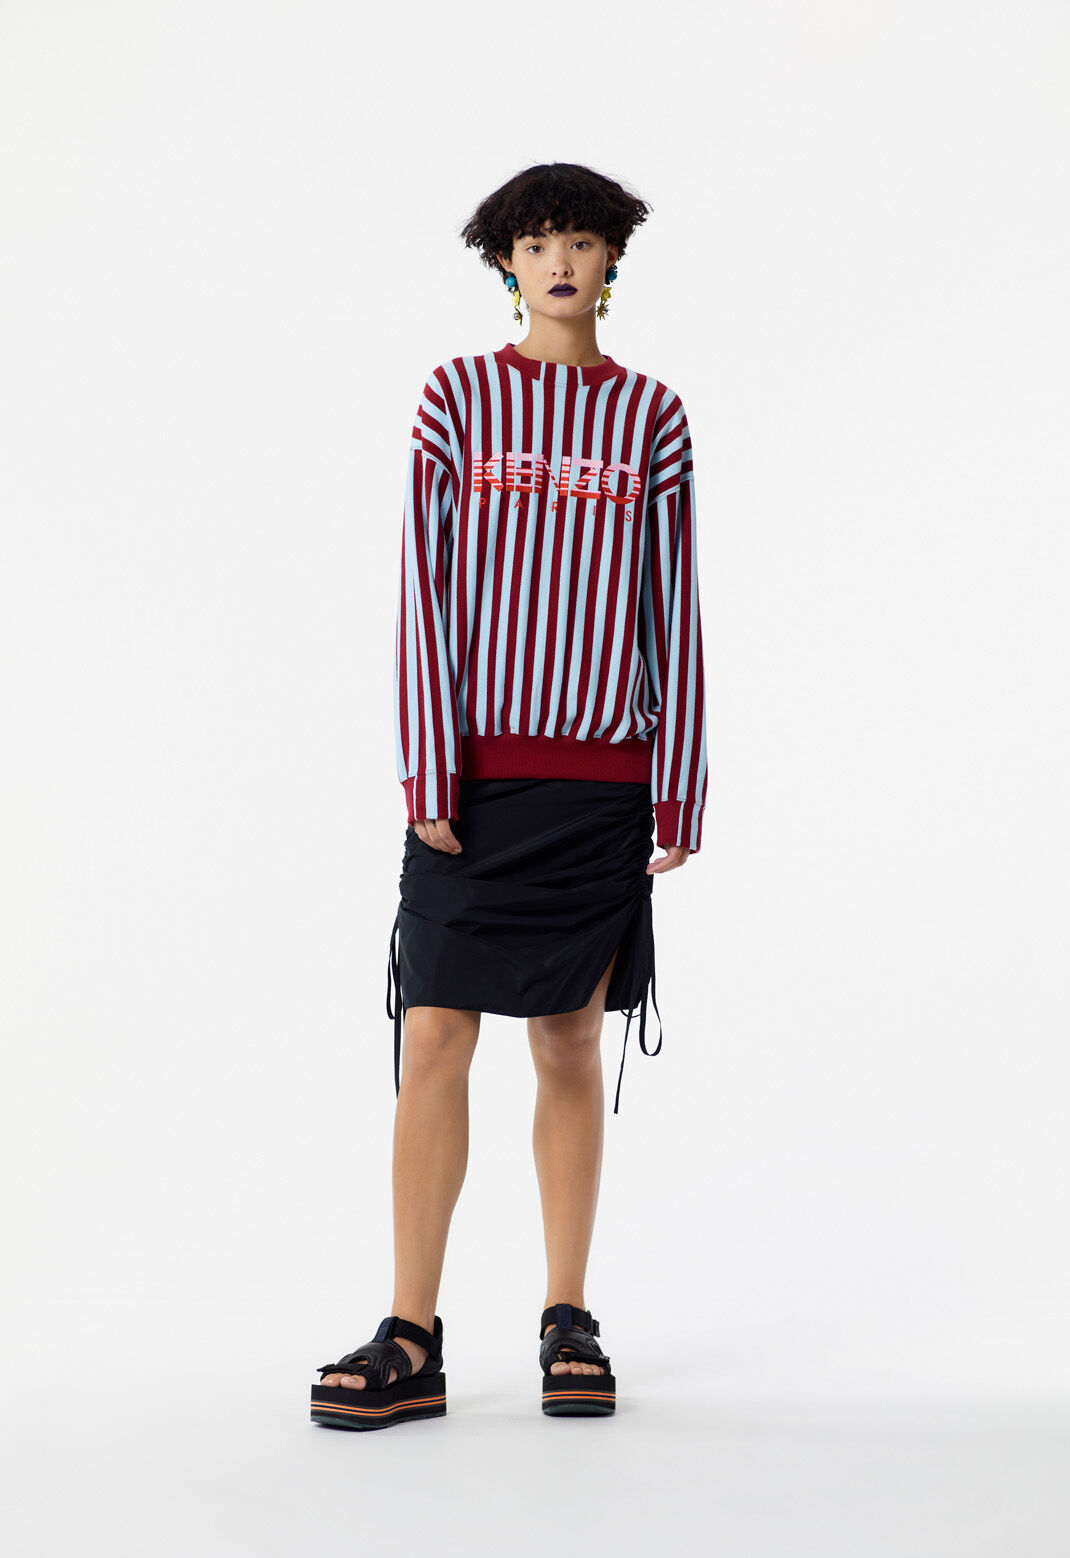 BORDEAUX Striped KENZO sweatshirt for women